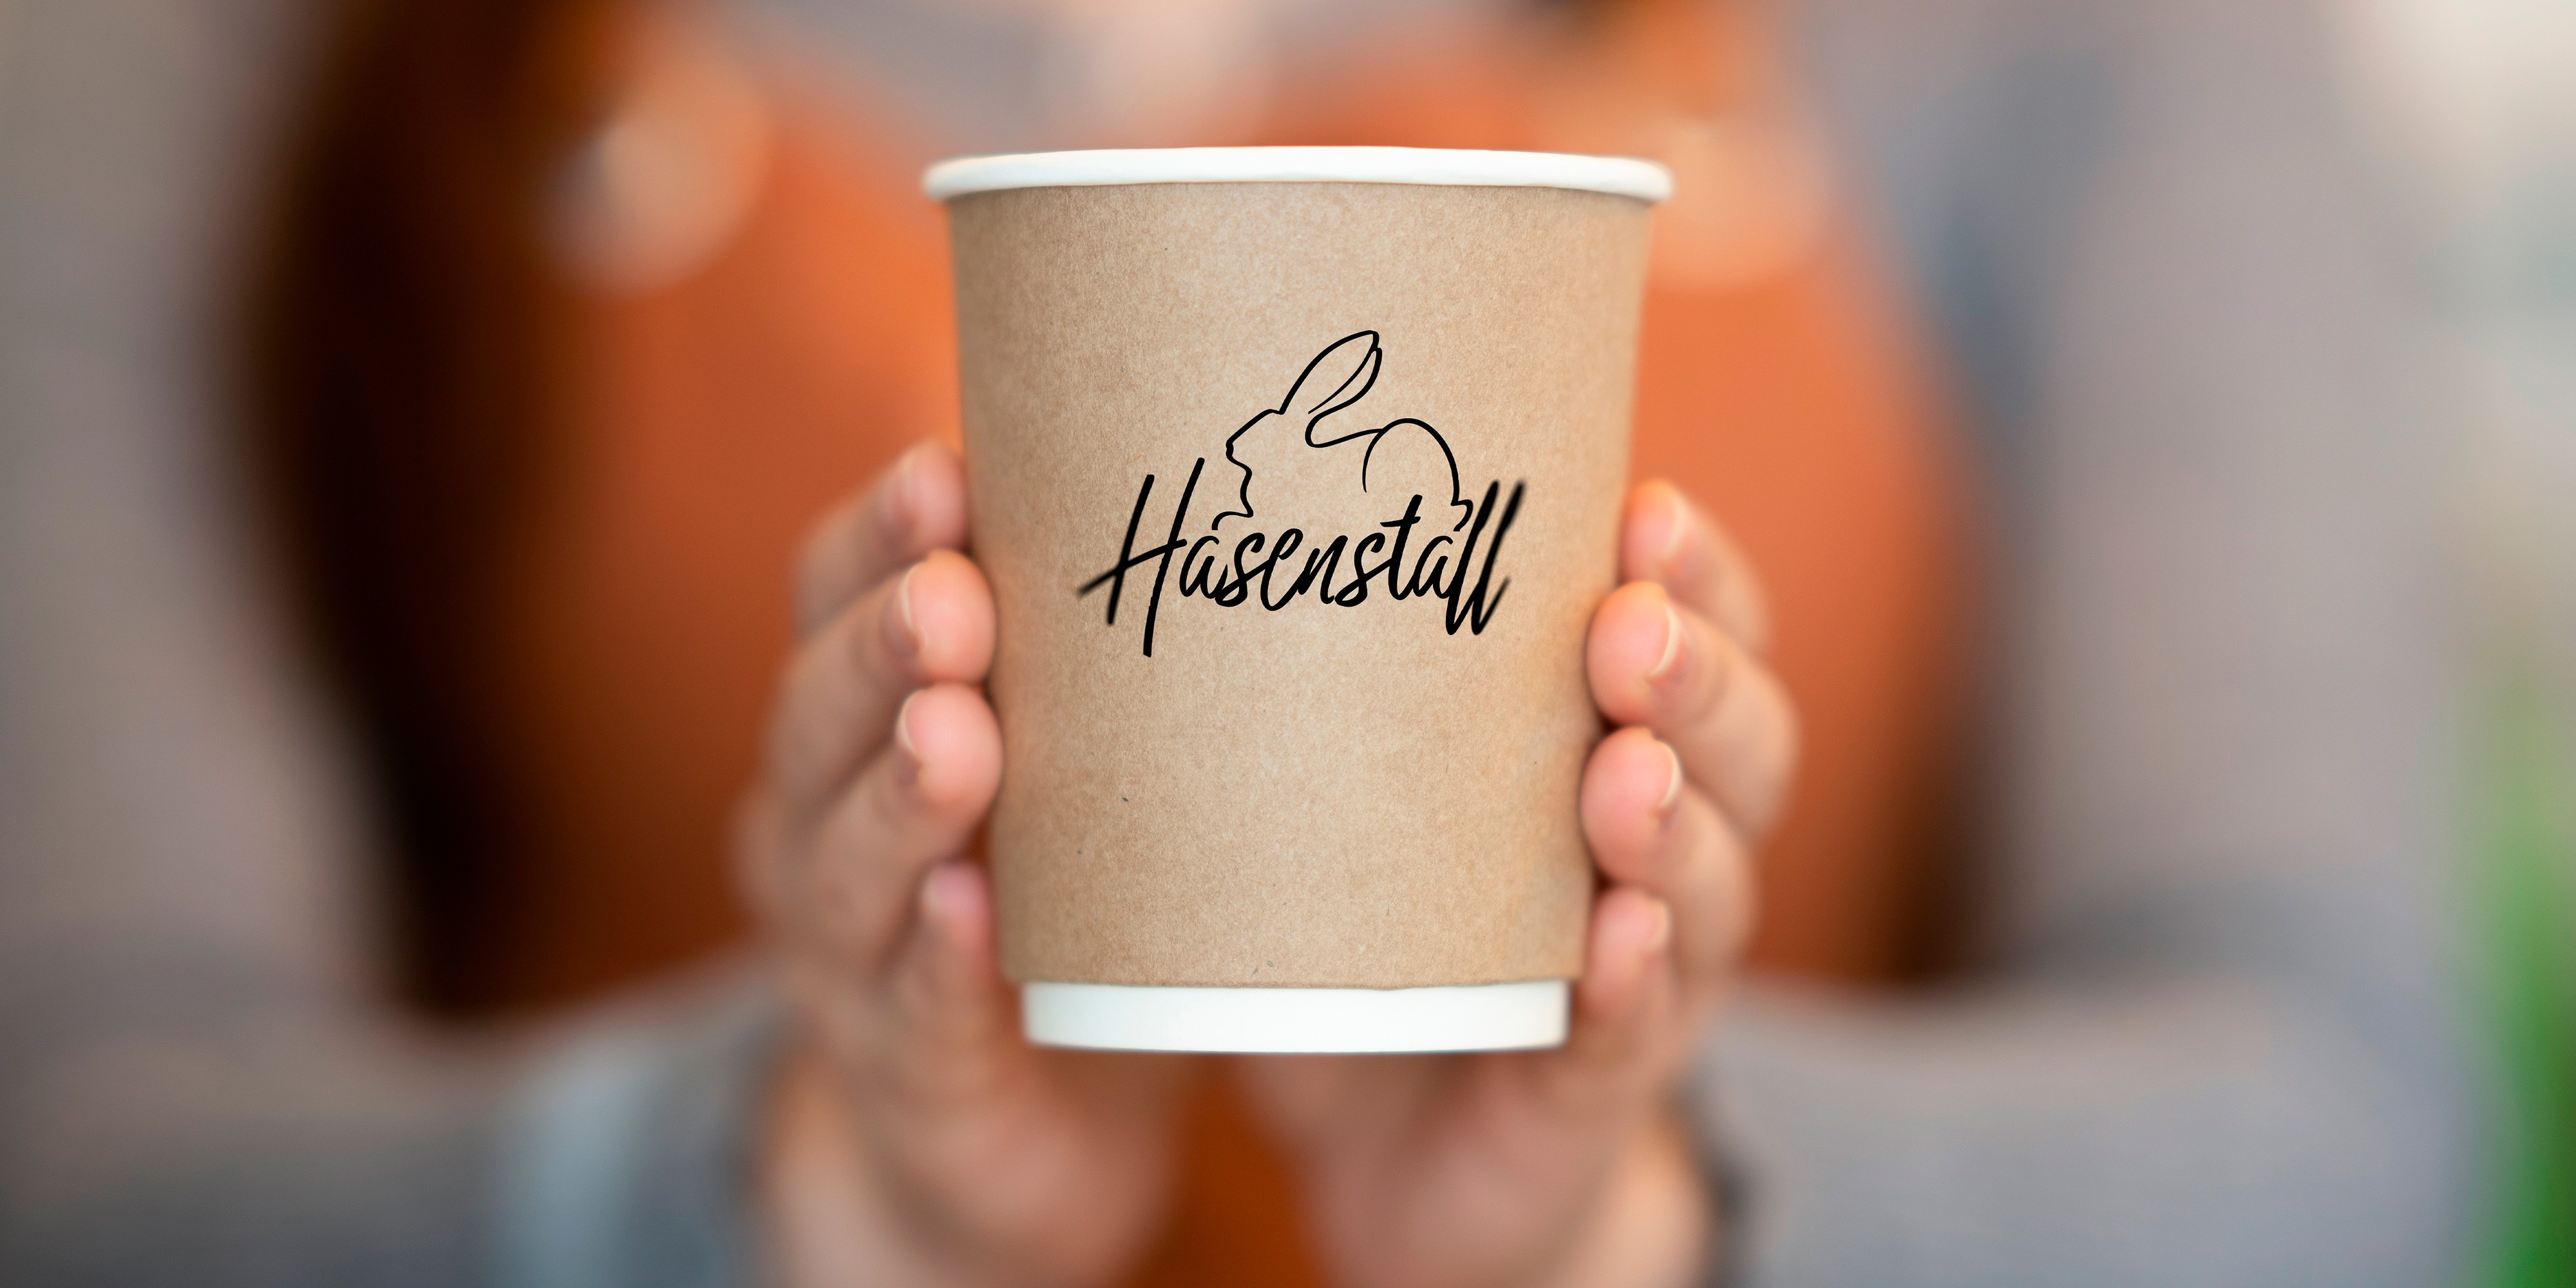 Hasenstall cafe in your house